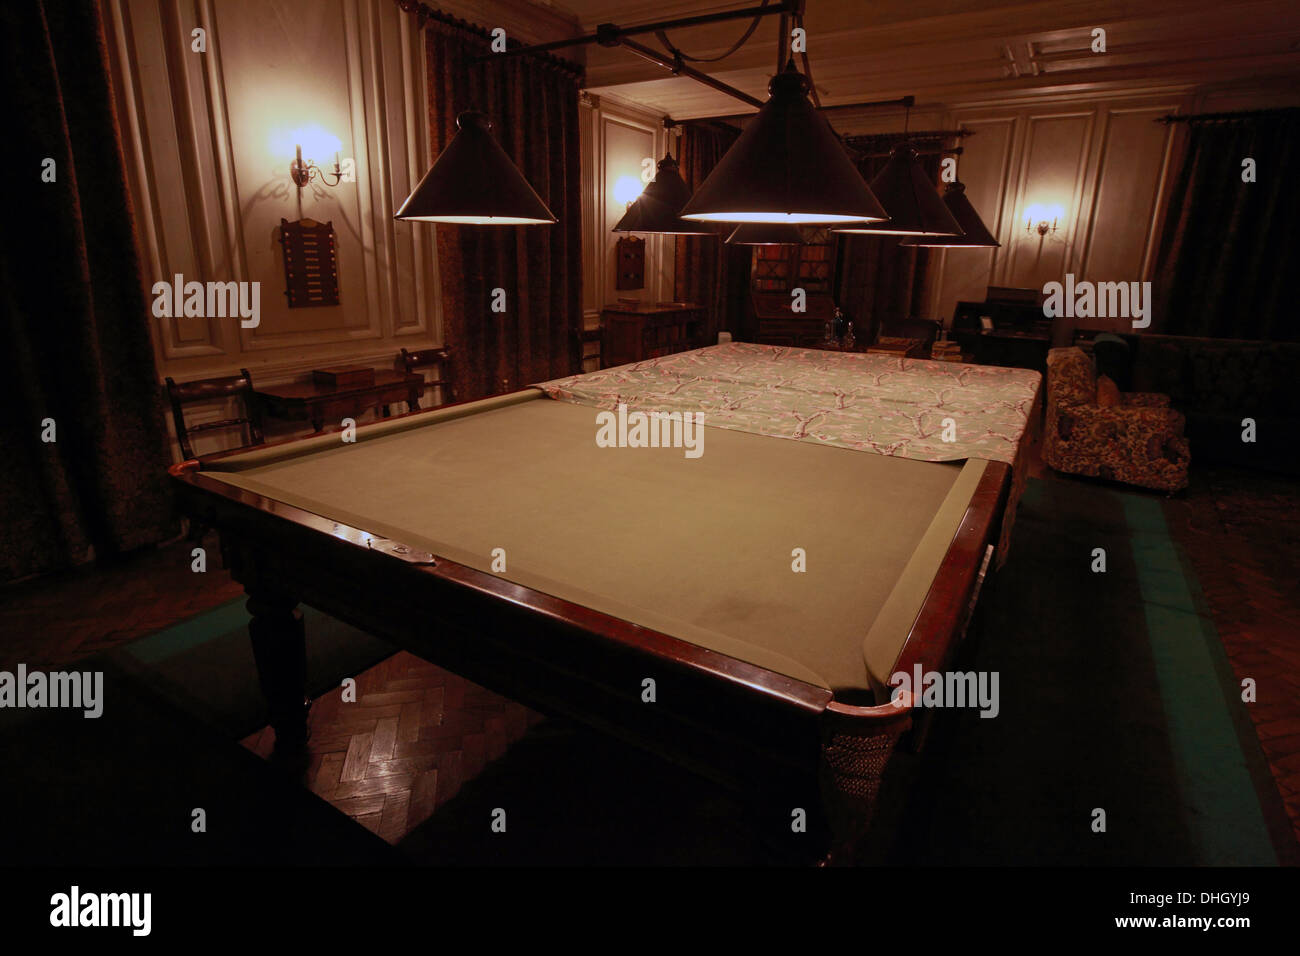 Snooker table in the mens games room at Dunham Massey NT near Altrincham Cheshire, England, UK - Stock Image